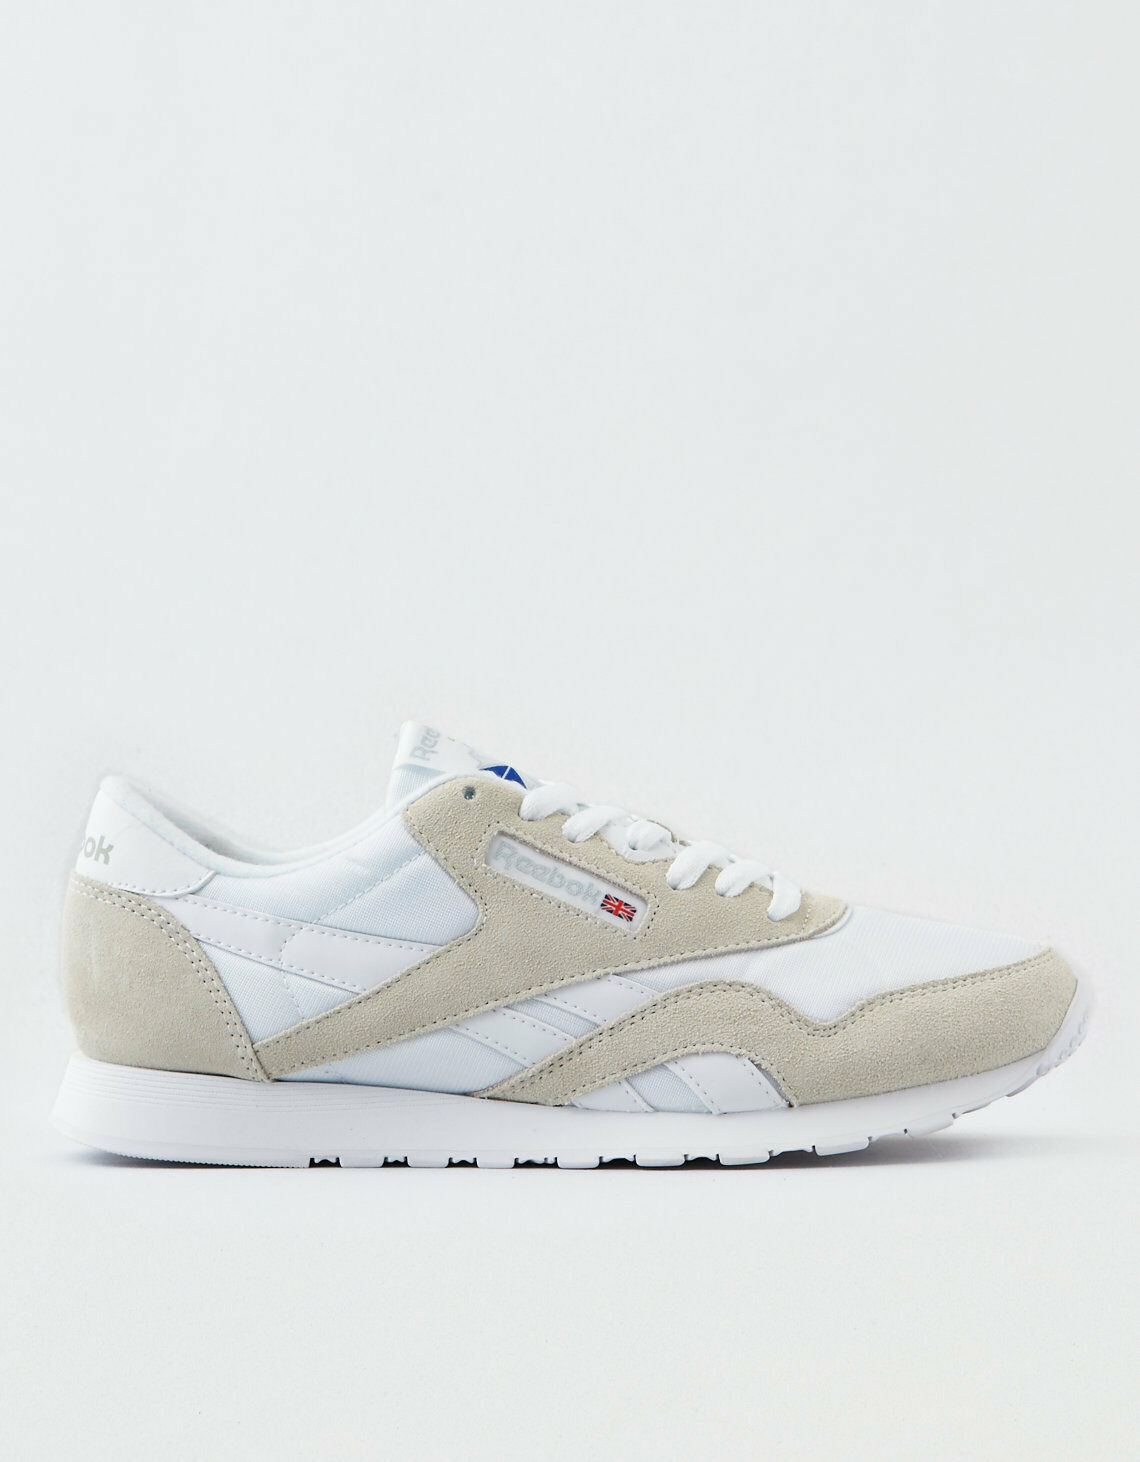 Limited-Edition Reebok X AE Uomo Classic Nylon Suede  Running Shoes NEW 9